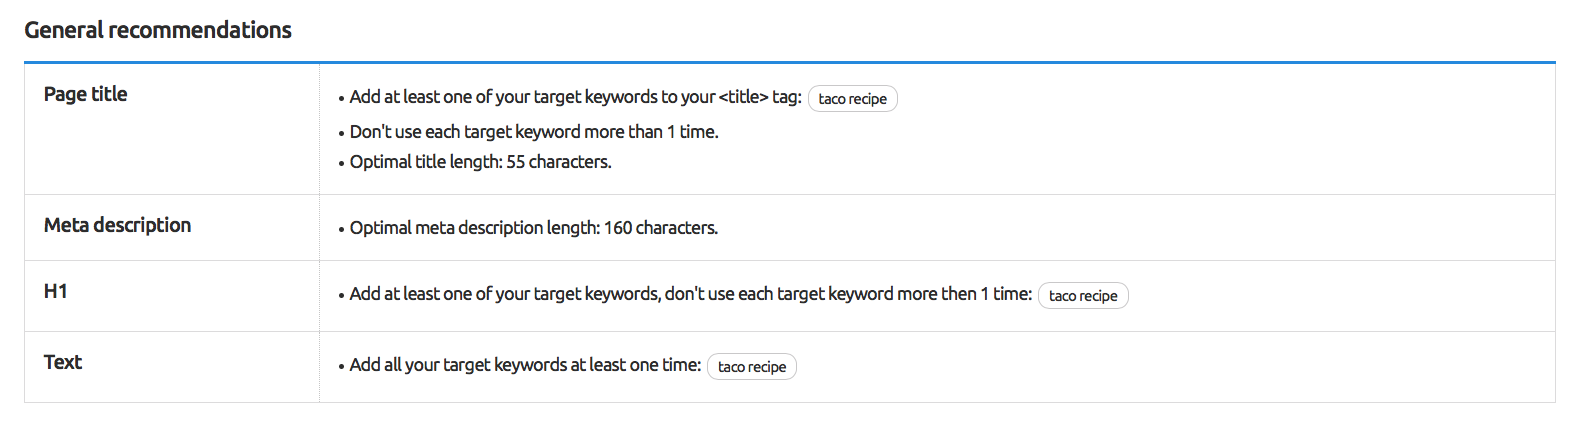 SEMrush: SEO Templates for Content in One Click image 4